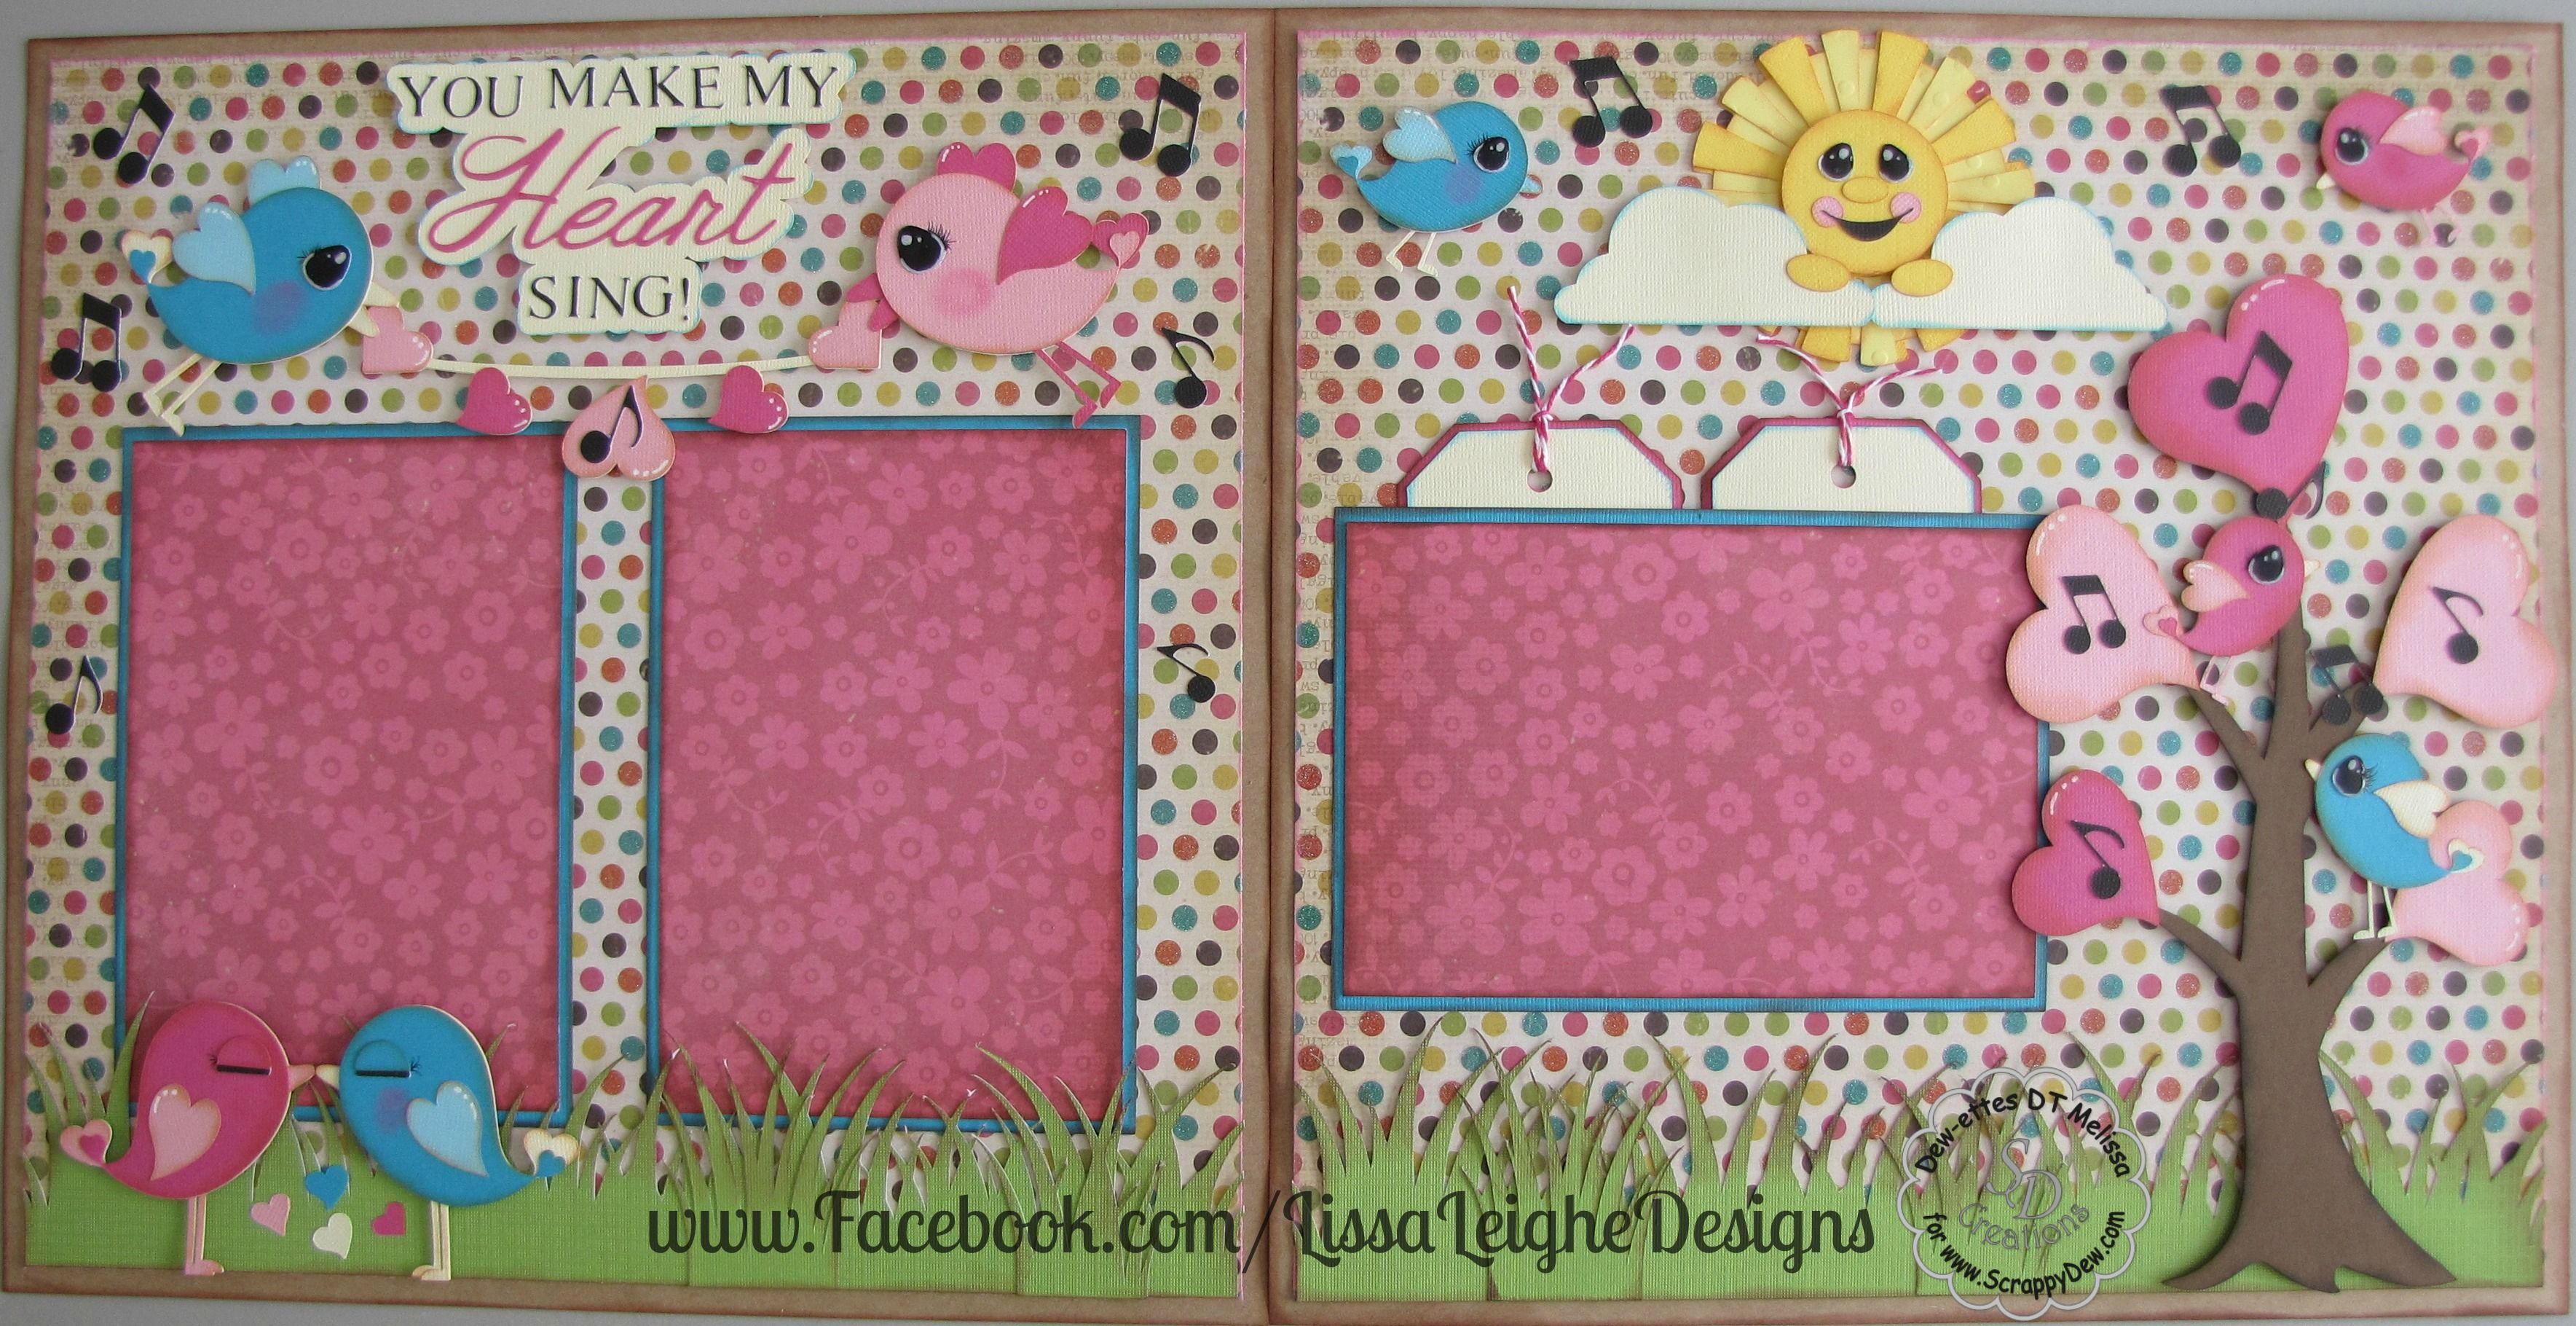 How to make scrapbook in facebook - Facebook Com Lissaleighedesigns Scrappydew Paper Piecings Scrapbooking Spring Layout Valentine S Day Layout